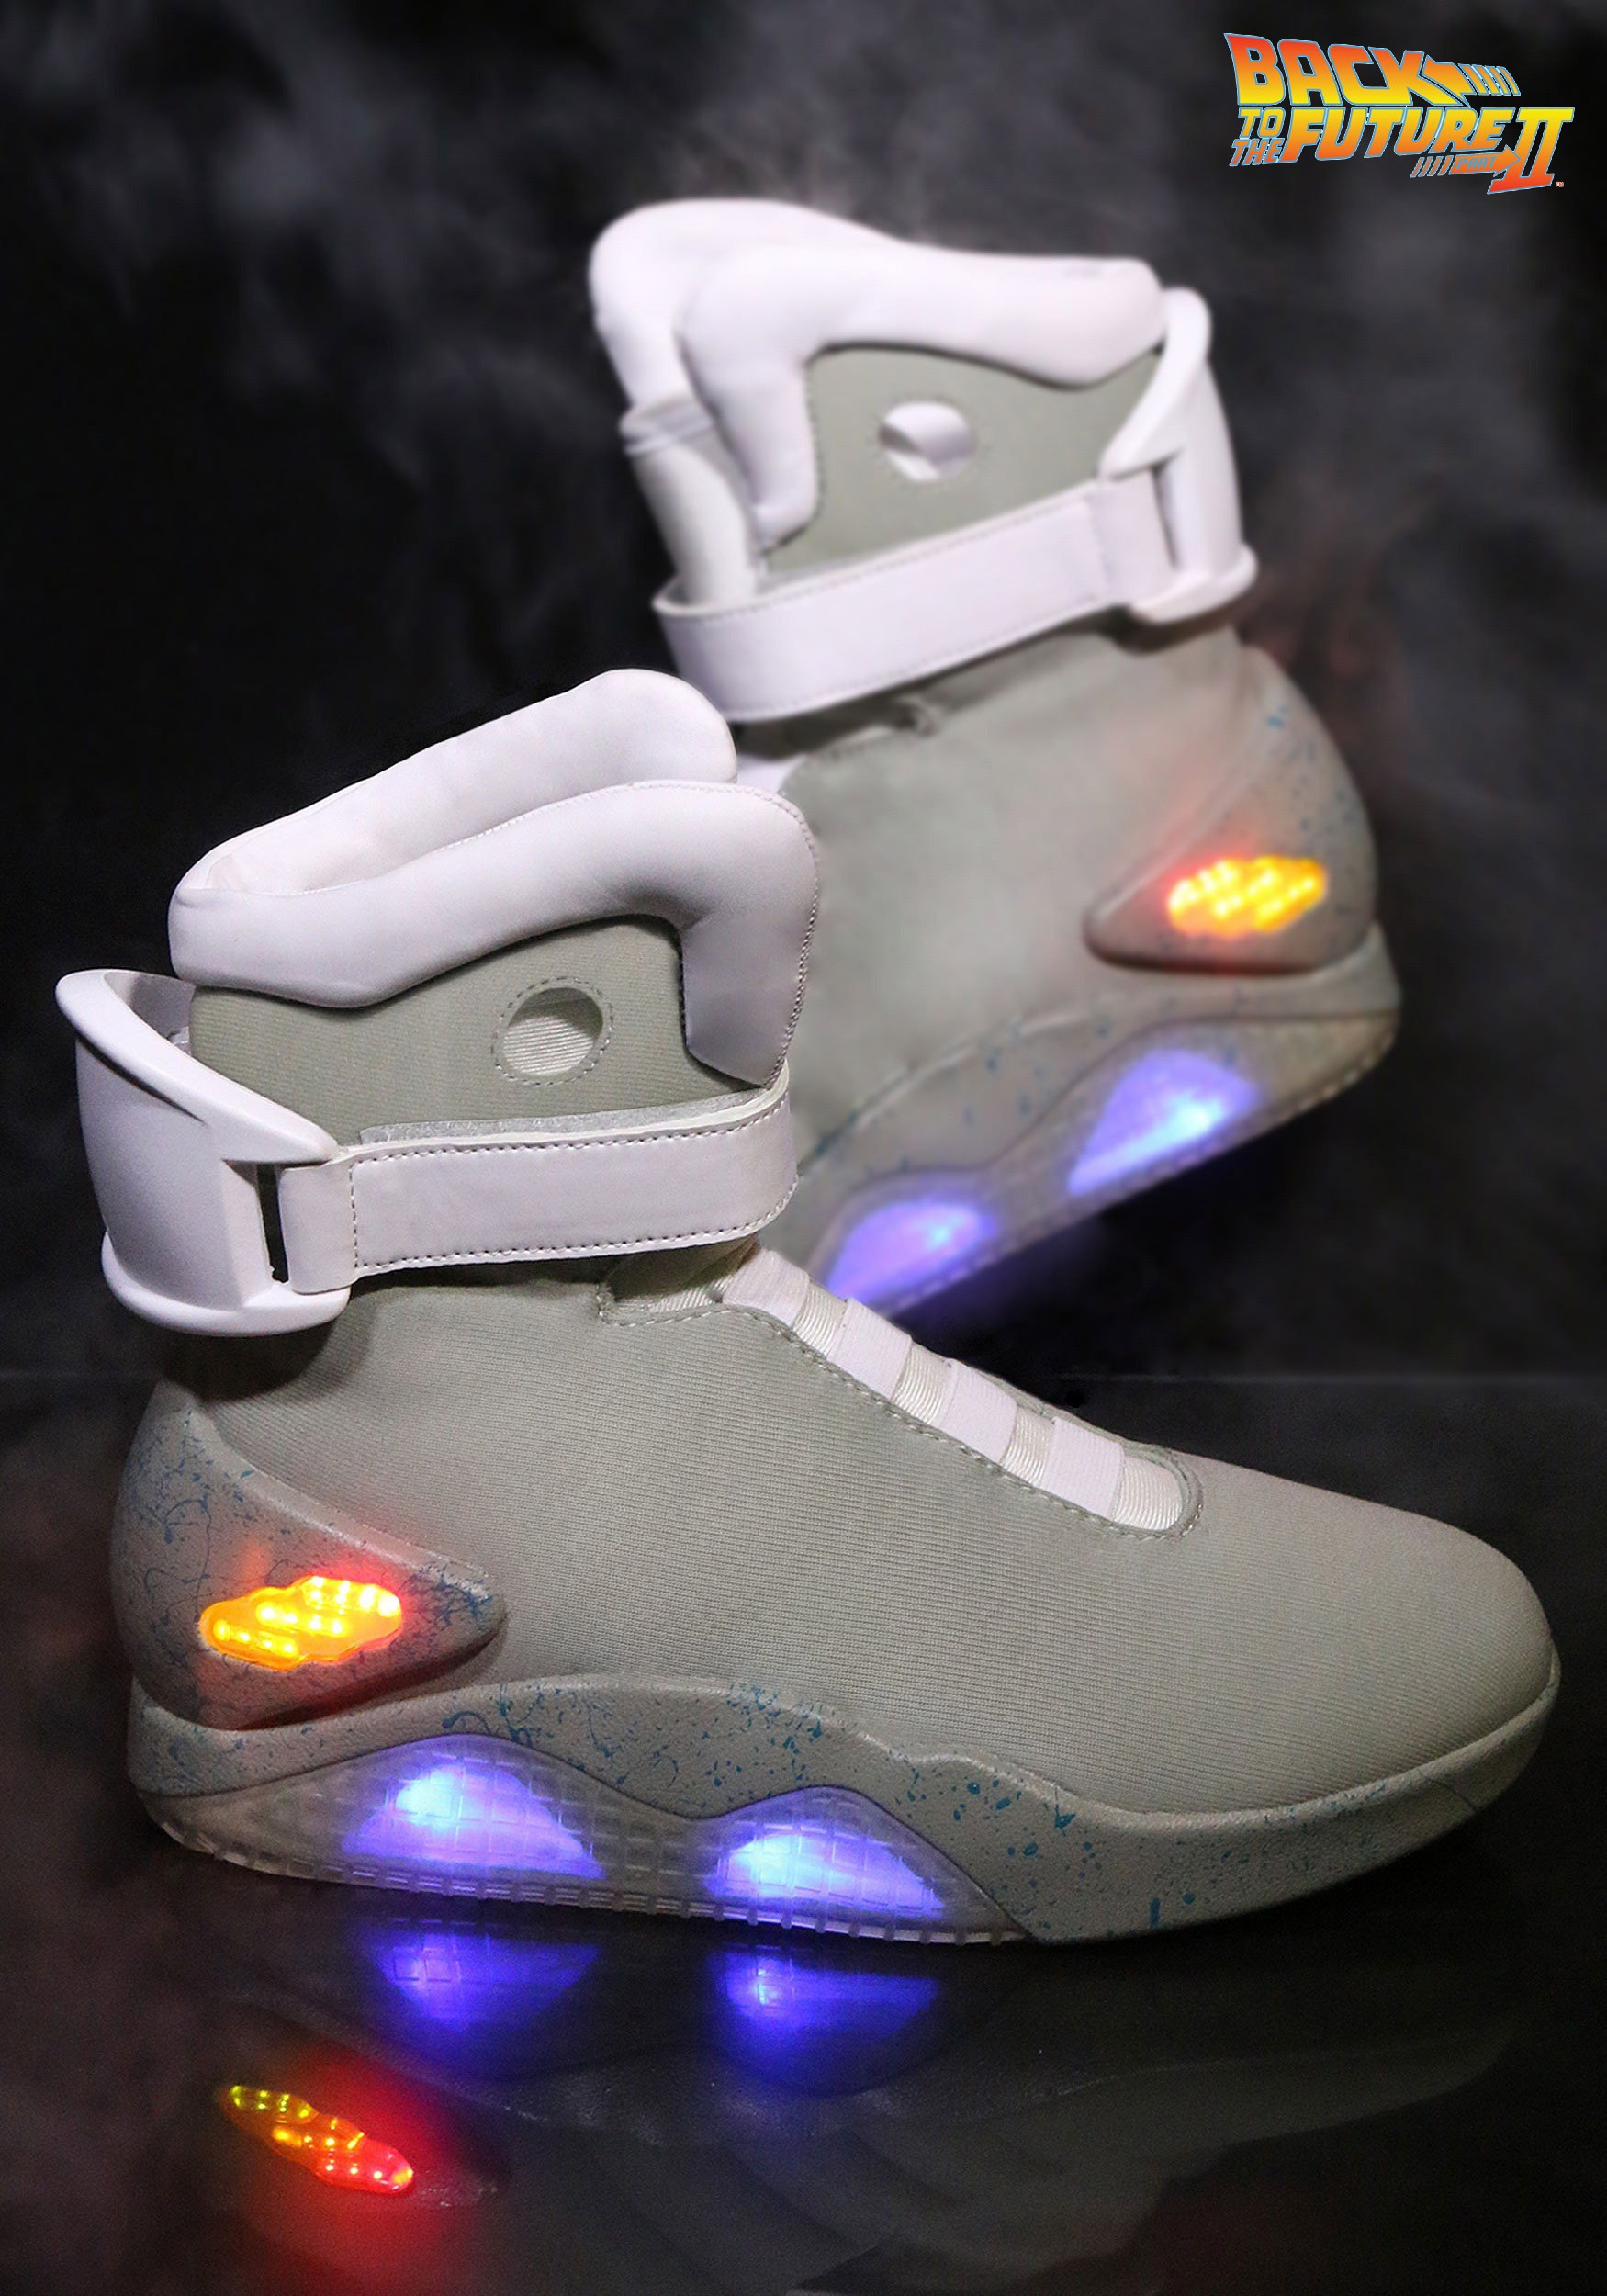 How Much Do Nike Air Mags Cost